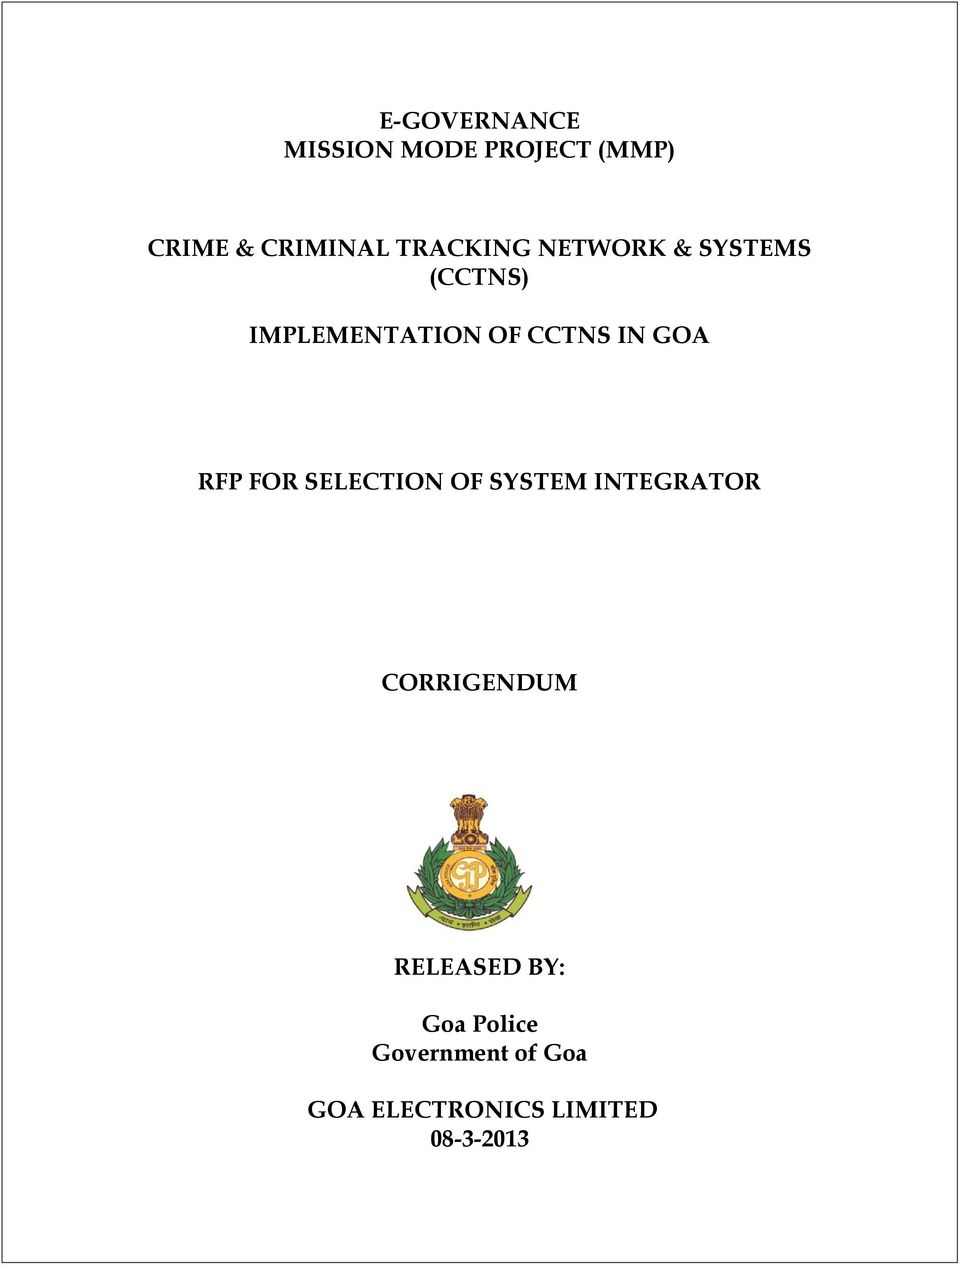 GOA RFP FOR SELECTION OF SYSTEM INTEGRATOR CORRIGENDUM